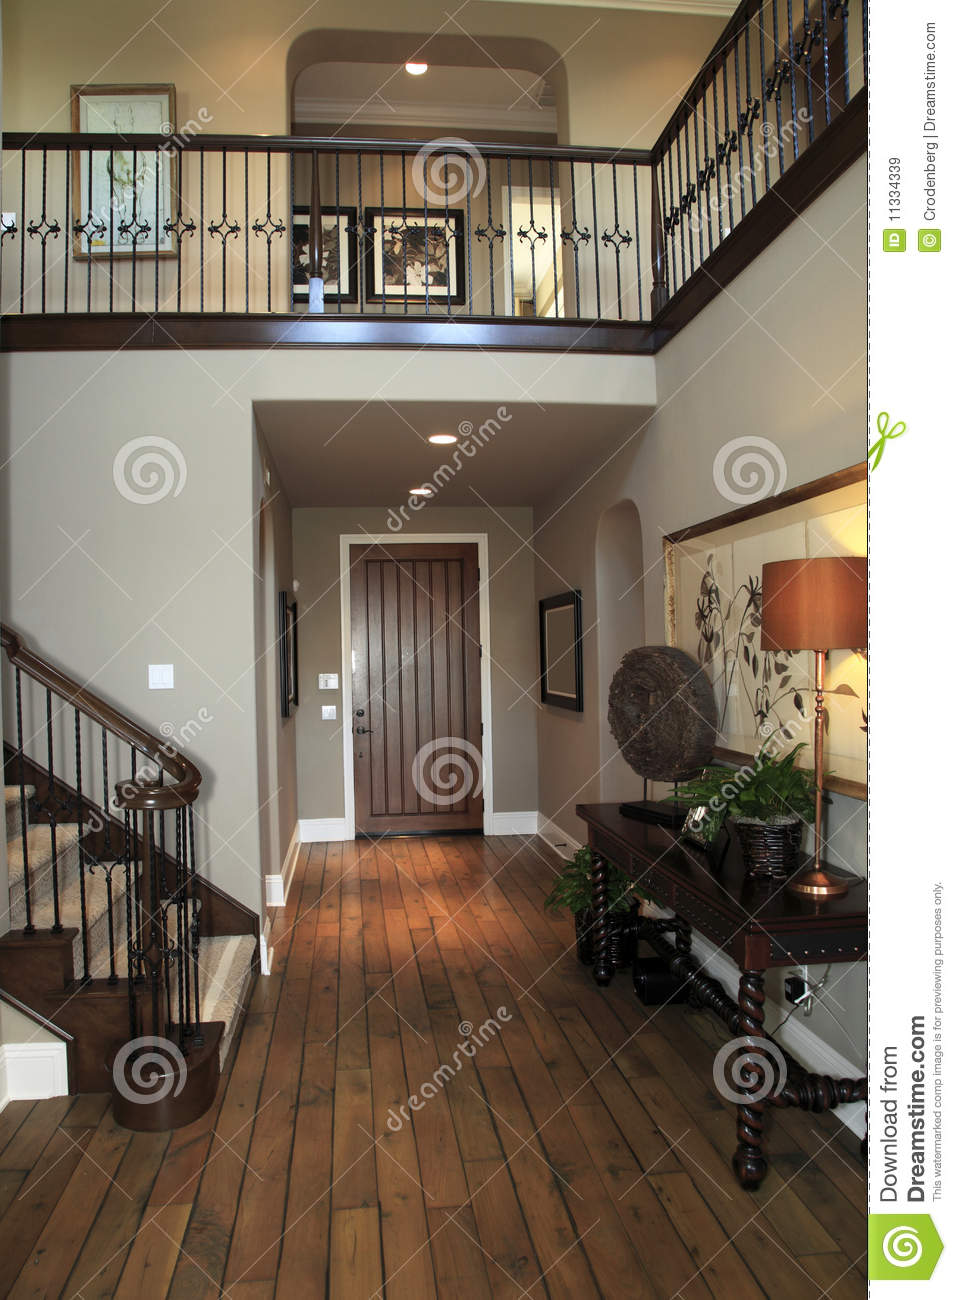 Luxury home hallway royalty free stock images image for Free luxury home images